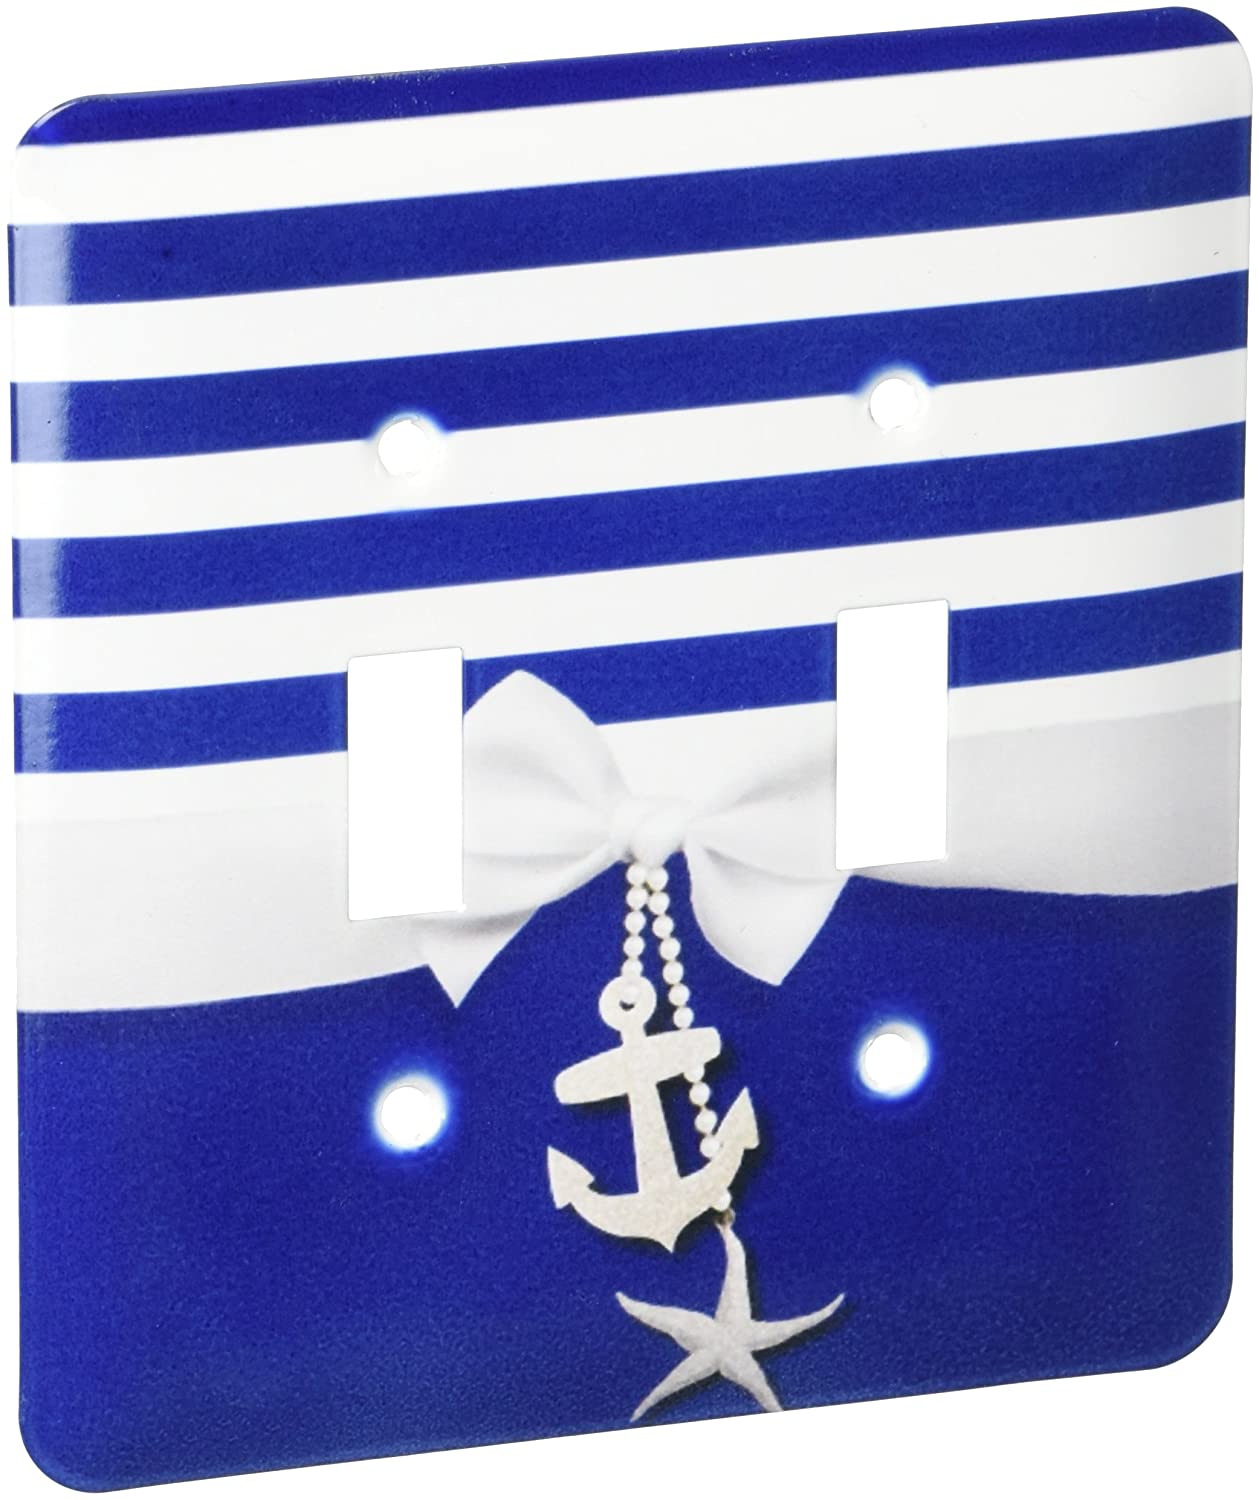 3dRose lsp_151234_2 Nautical Navy Blue and White Stripes 2D Ribbon Bow Graphic and Printed Anchor and Starfish Charms Double Toggle Switch